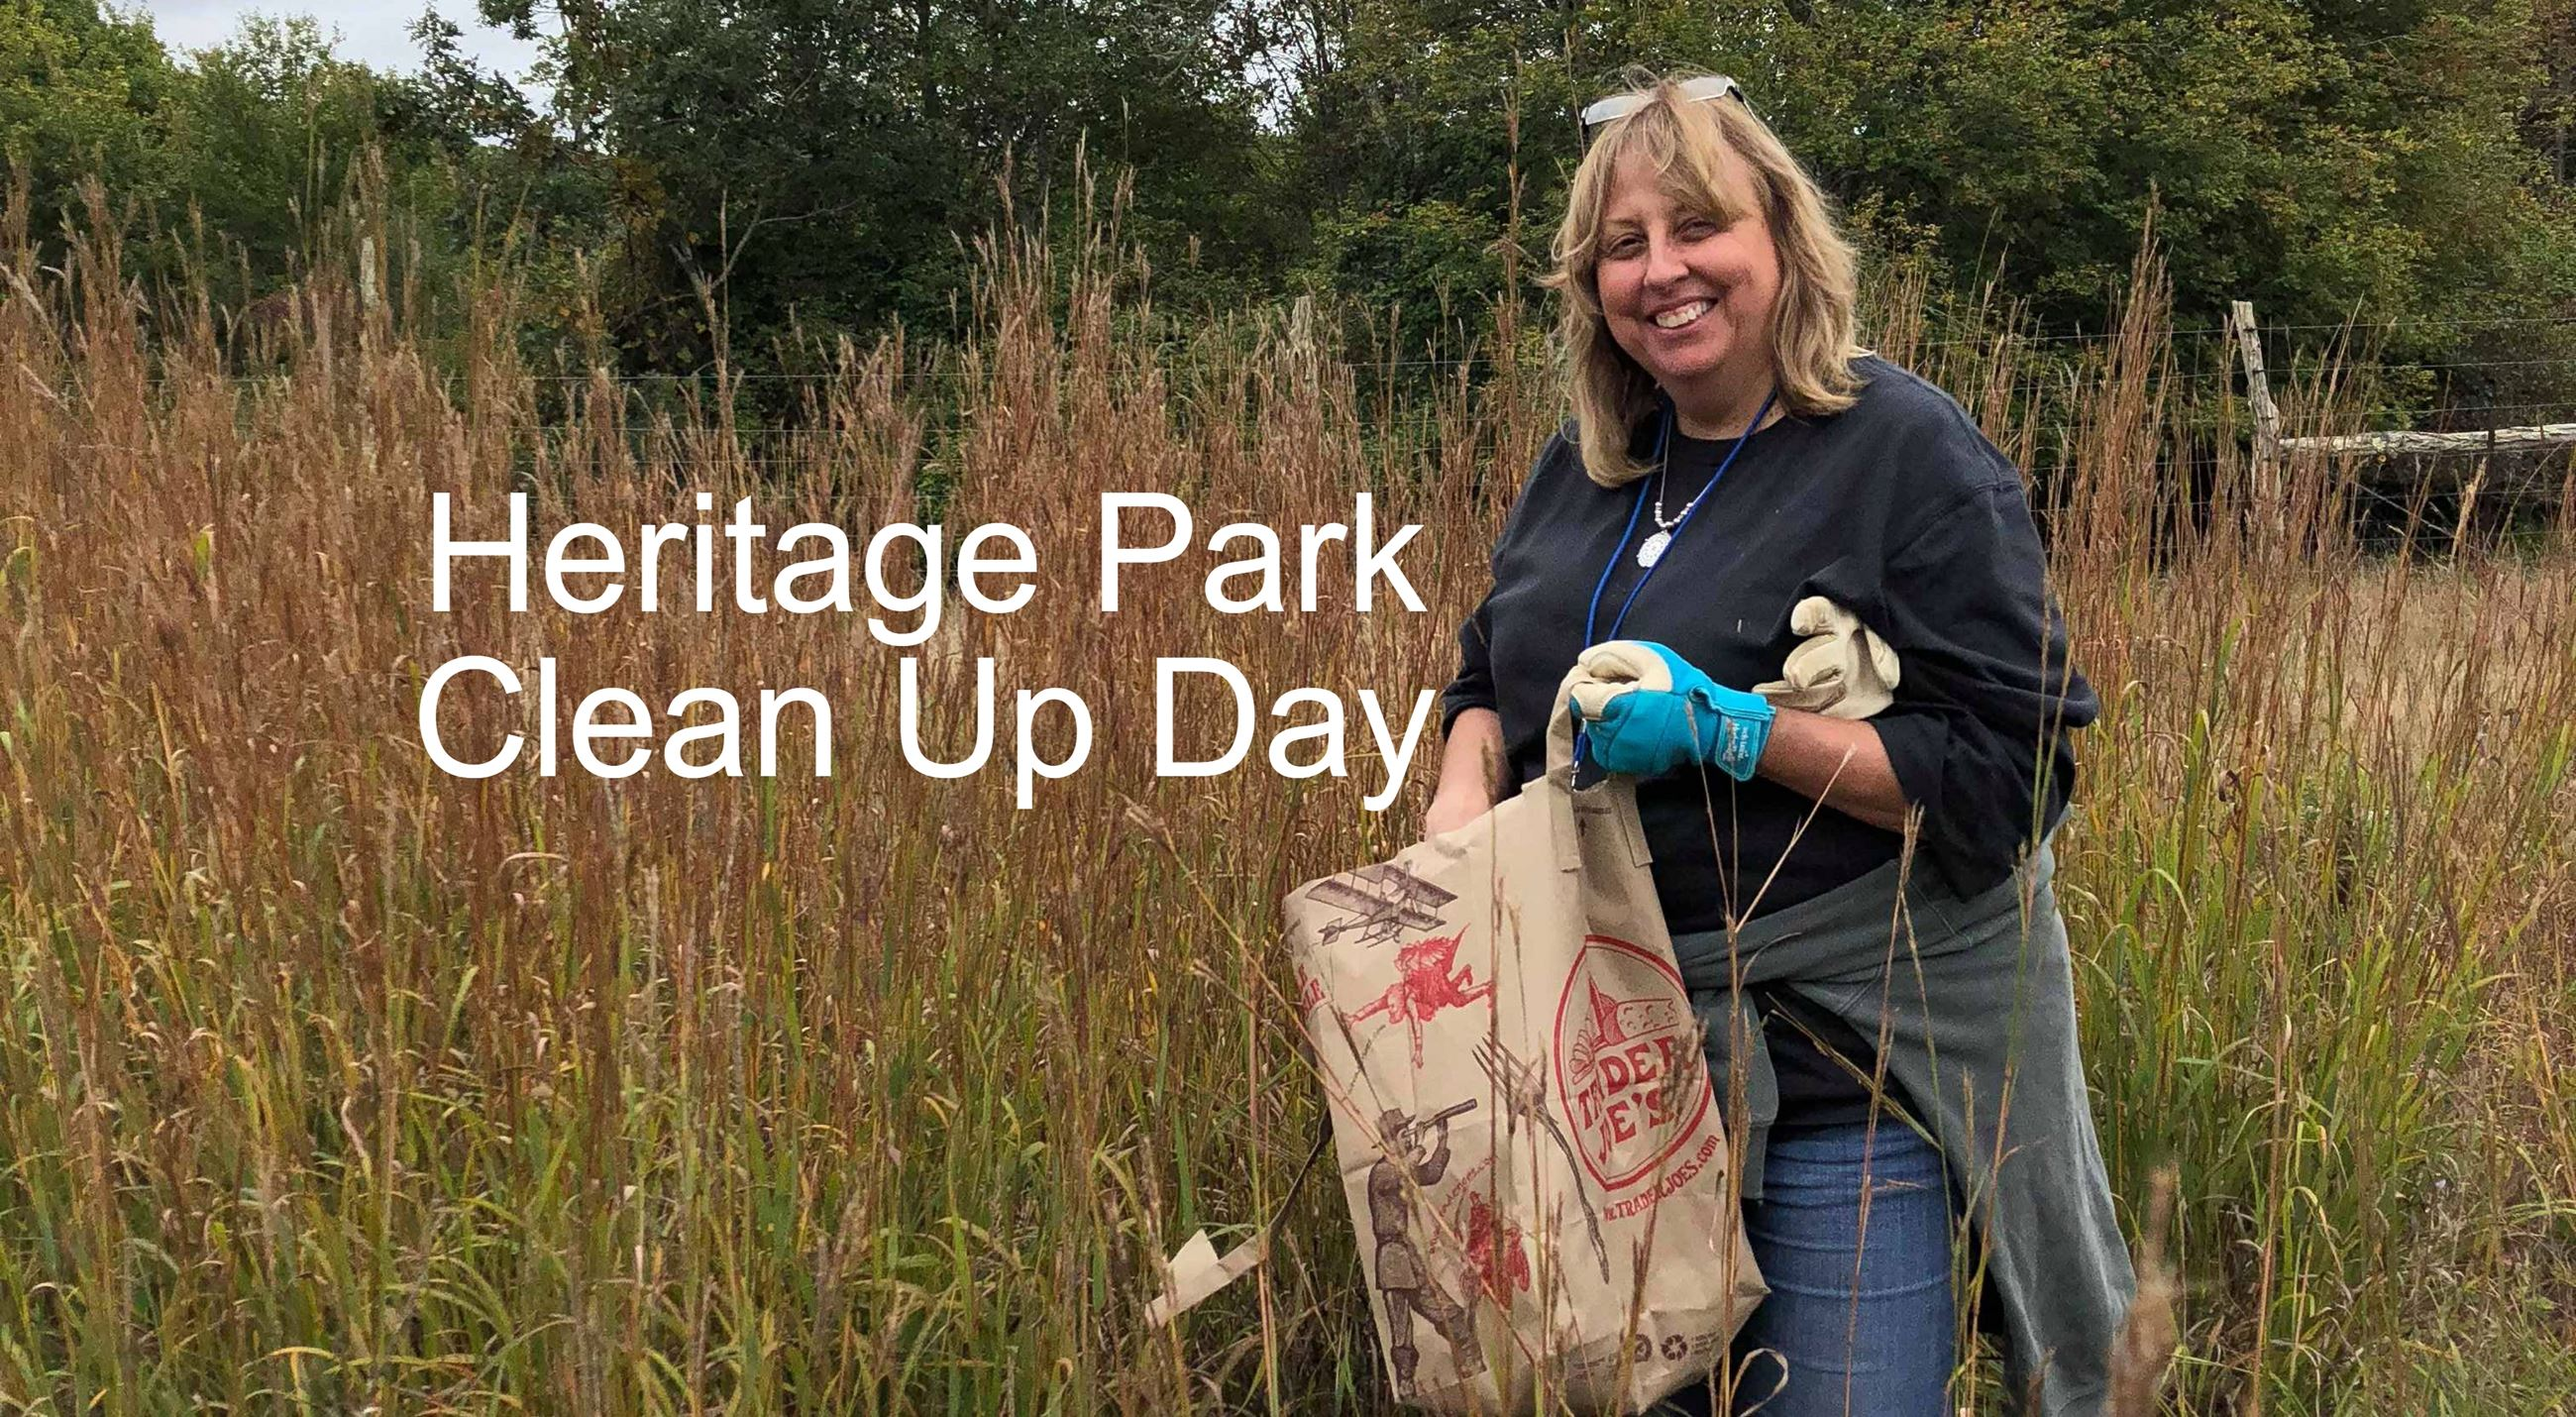 Heritage Park Clean Up Day